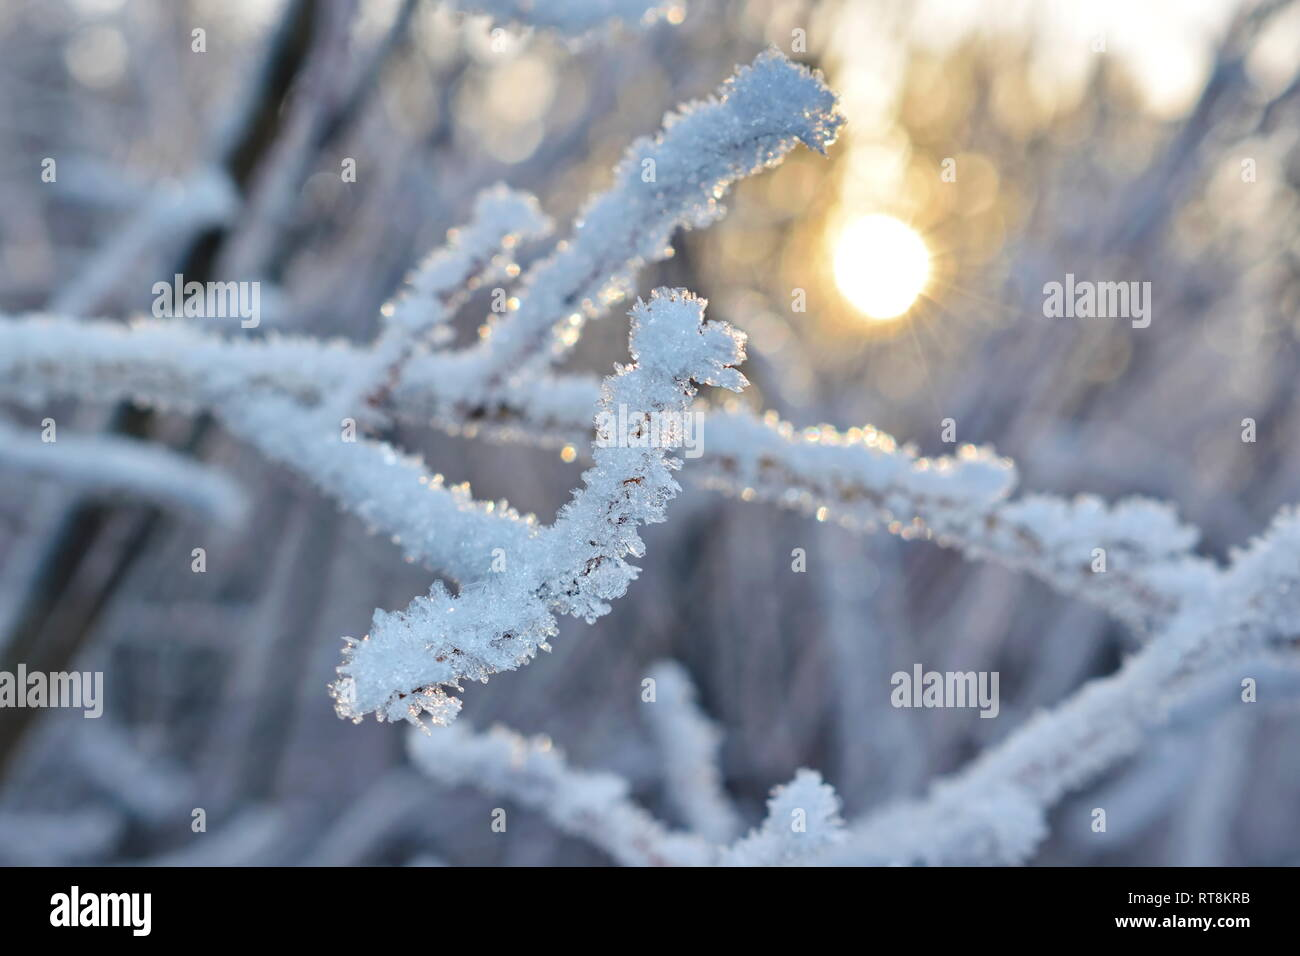 Delicate frost crystals growing on twigs are illuminated by the golden light of the low winter sun on a cold day in northern Sweden. Stock Photo